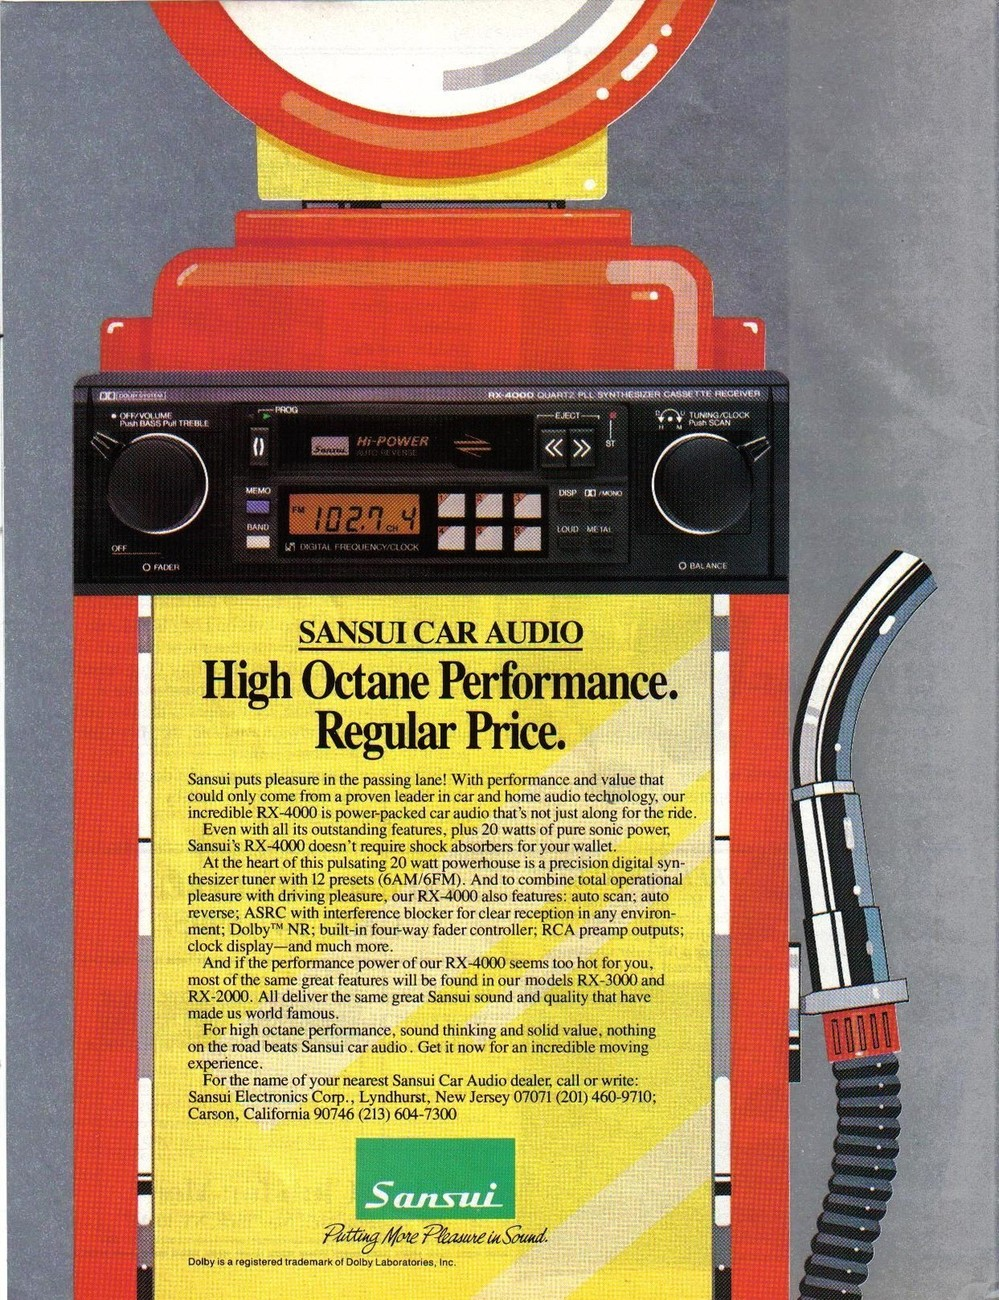 Primary image for Sansui Car Audio Full Page Color Print Ad From 1986 Original Near Mint